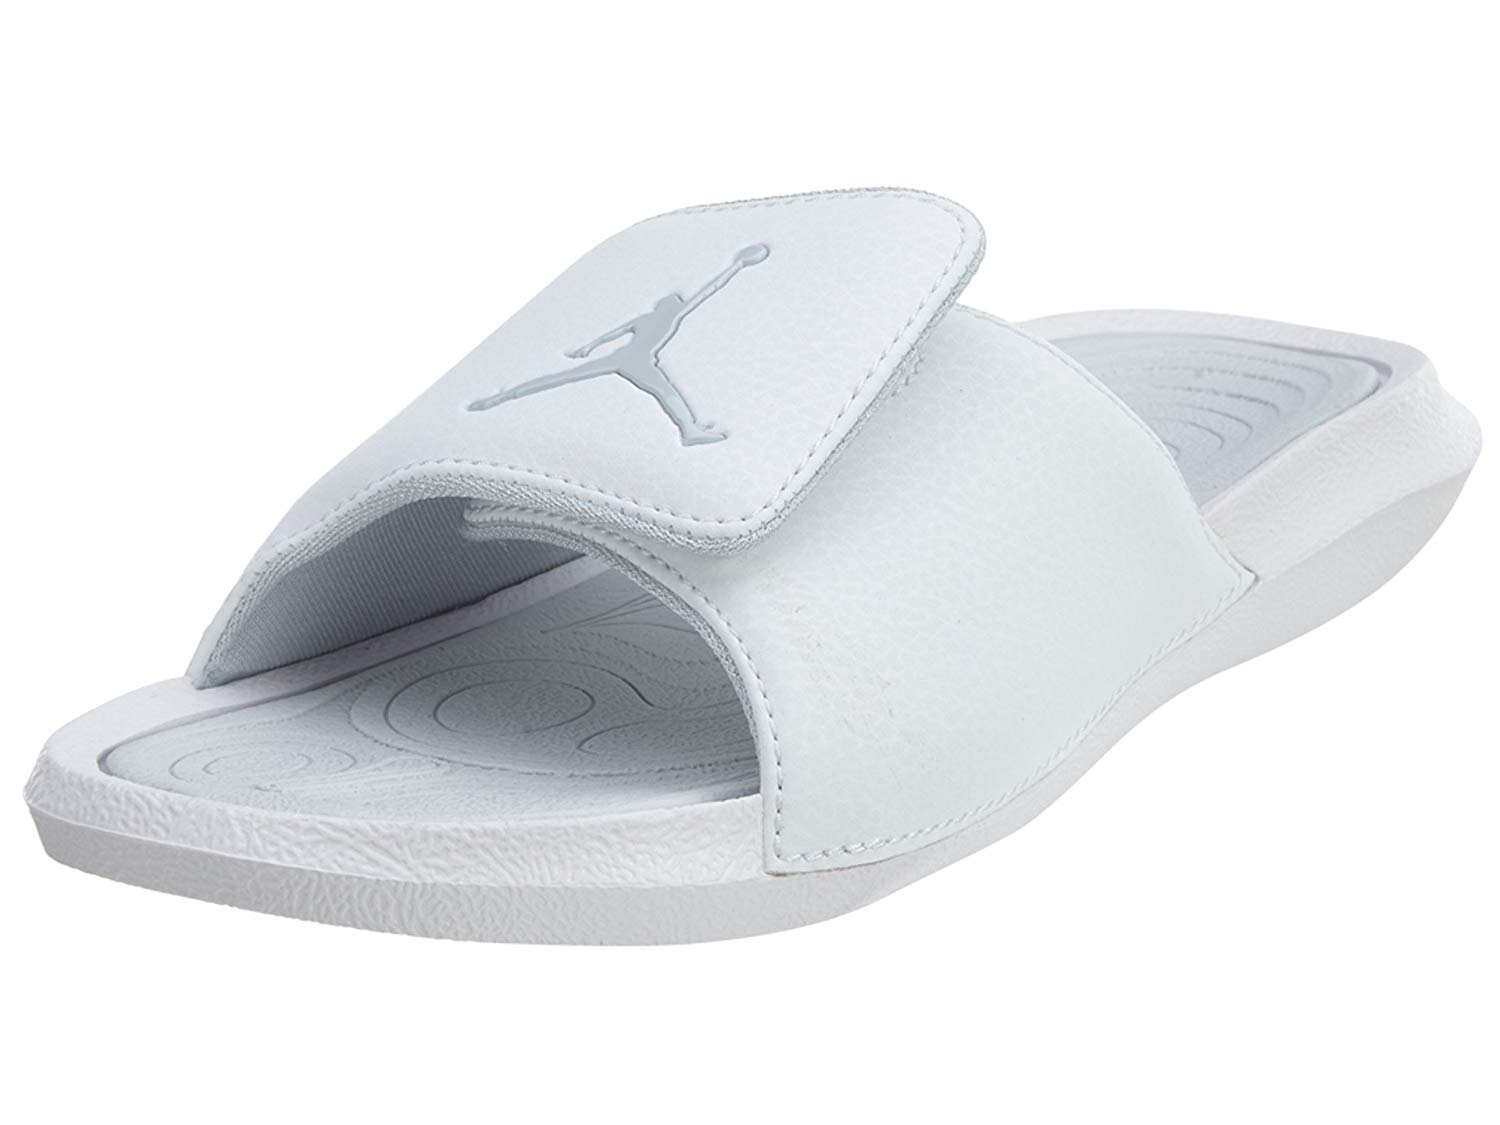 718d8a12da743e Get Quotations · Jordan Hydro 6 BG Big Kid s Slides White Pure Platinum  881474-100